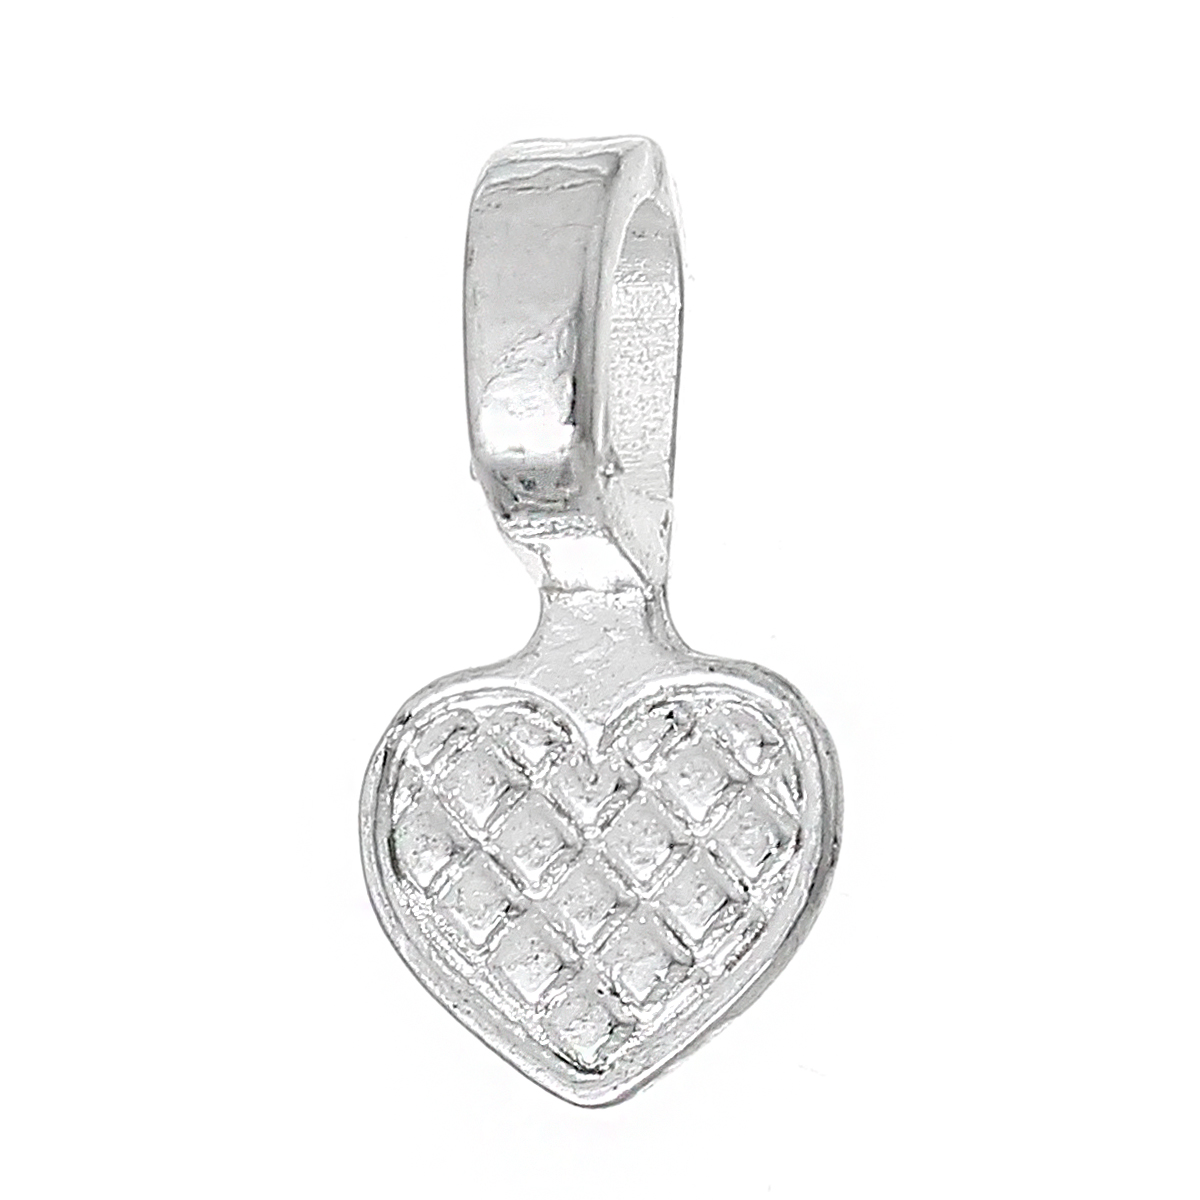 doreenbeads-glue-on-bail-charm-heart-silver-color-168mm-fontb5-b-font-8-x-80mm-fontb3-b-font-8200-pc